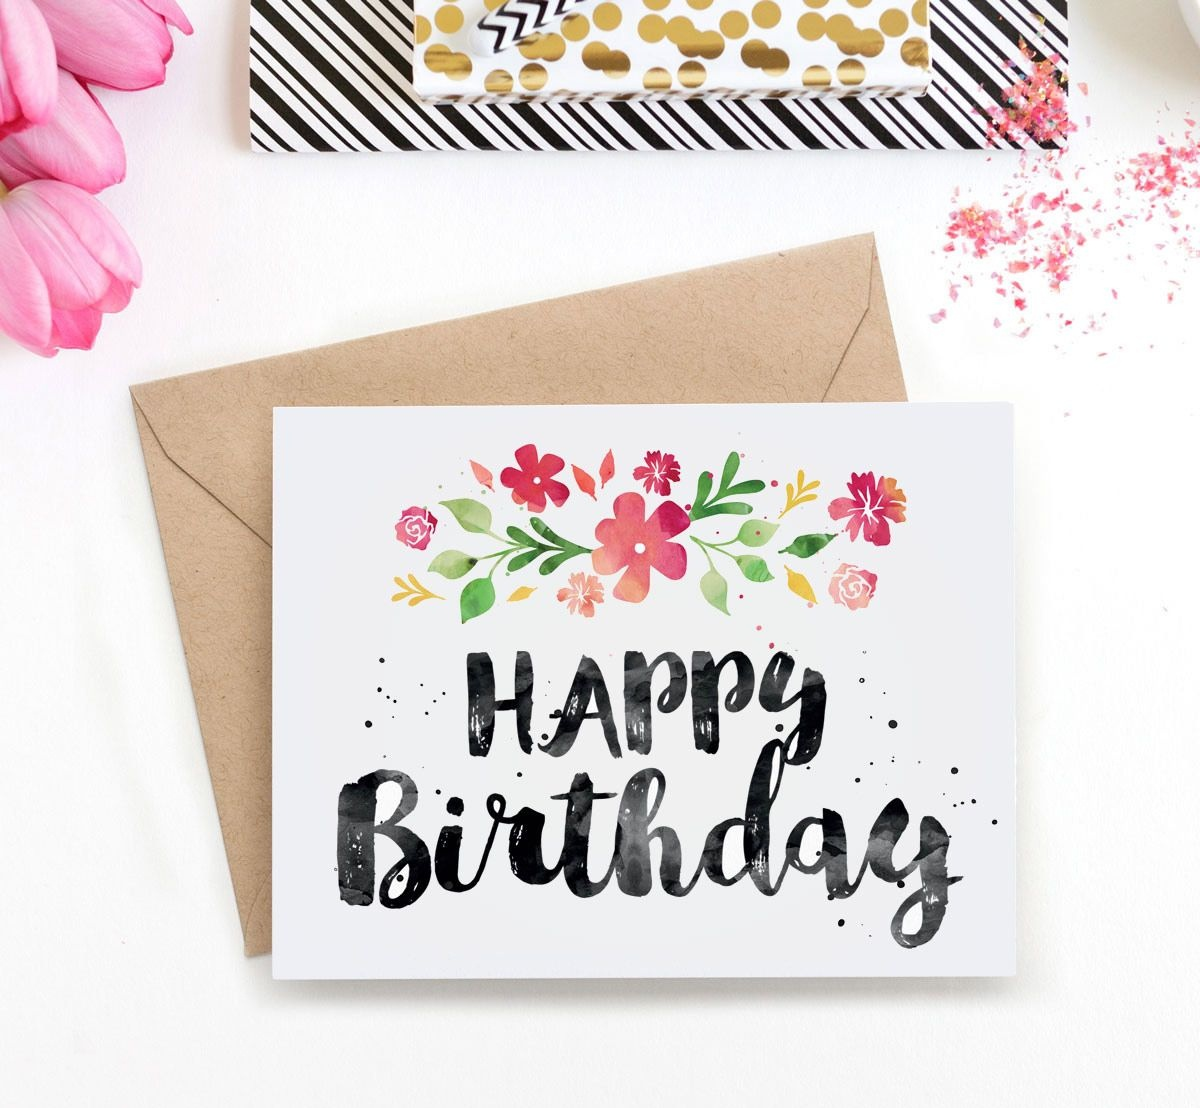 Watercolor Birthday Card At Getdrawings | Free For Personal Use - Free Printable Birthday Cards For Her